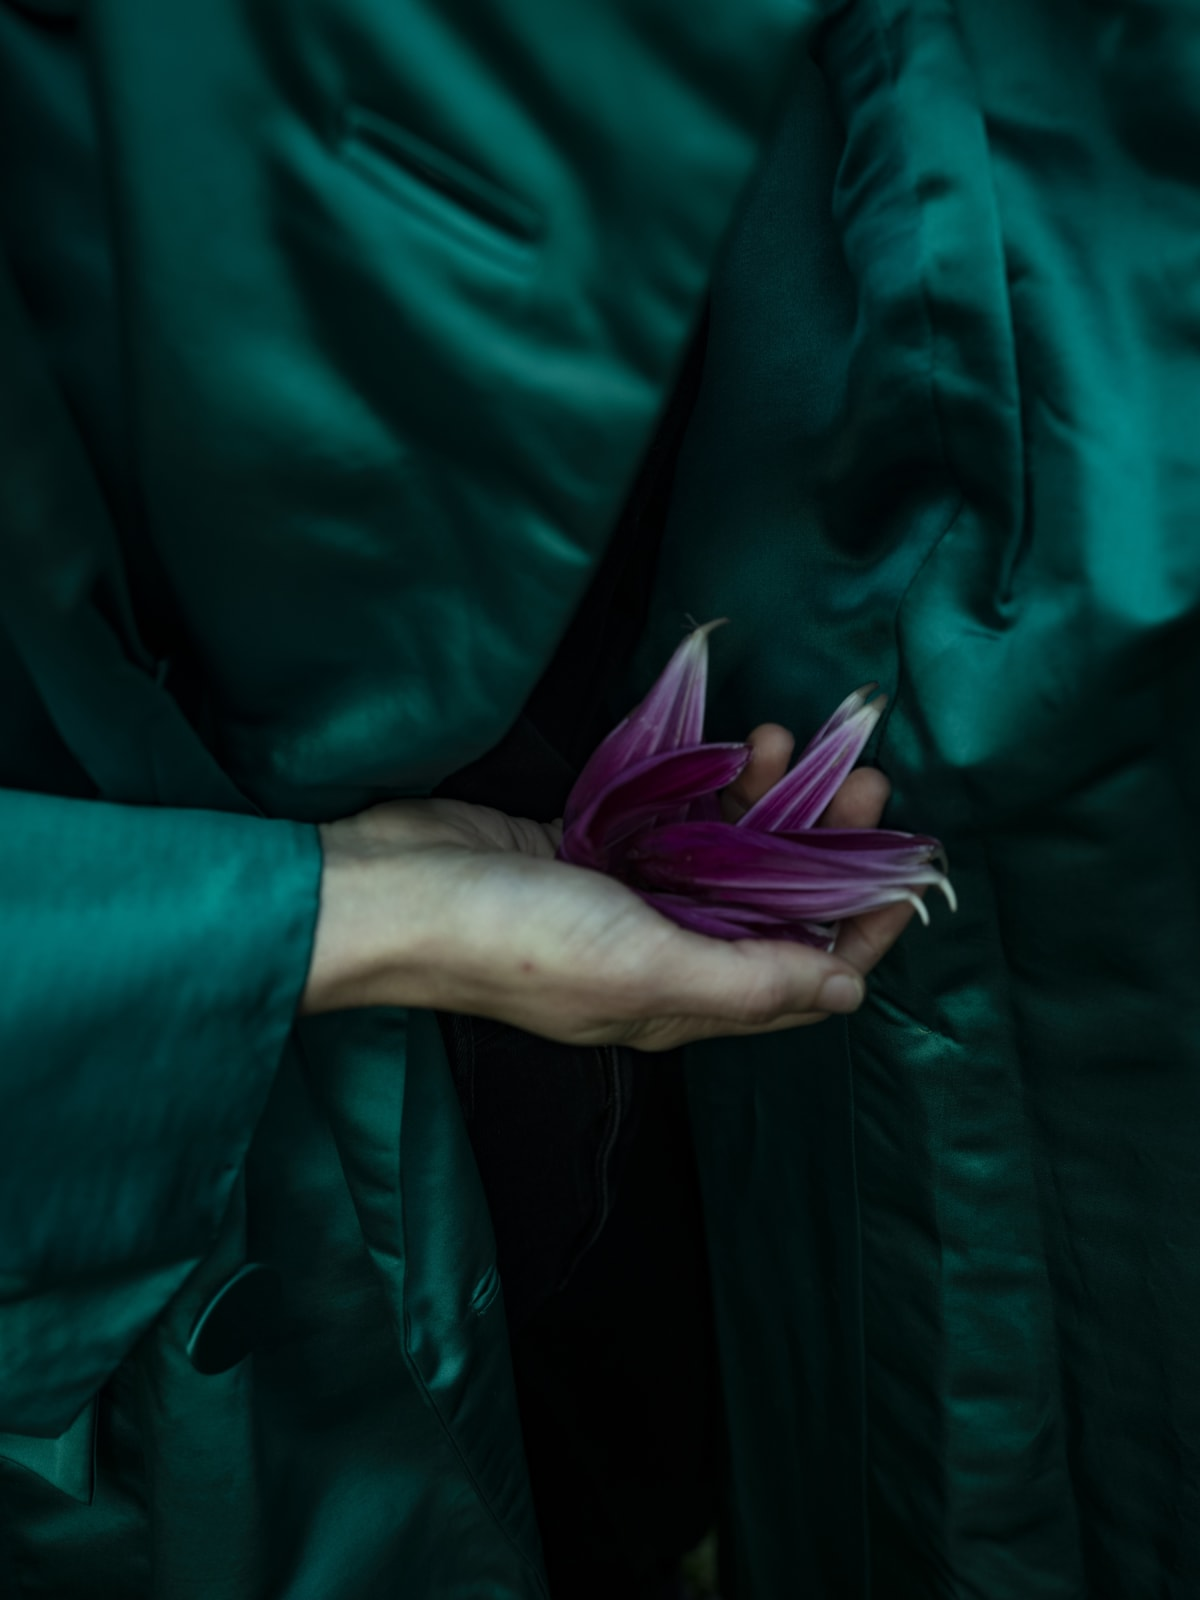 Cig Harvey, Emerald Coat with Dahlia Petals, 2019 20 x 16 inch chromogenic dye coupler print Edition of 10 40 x 30 inch chromogenic dye coupler print Edition of 7